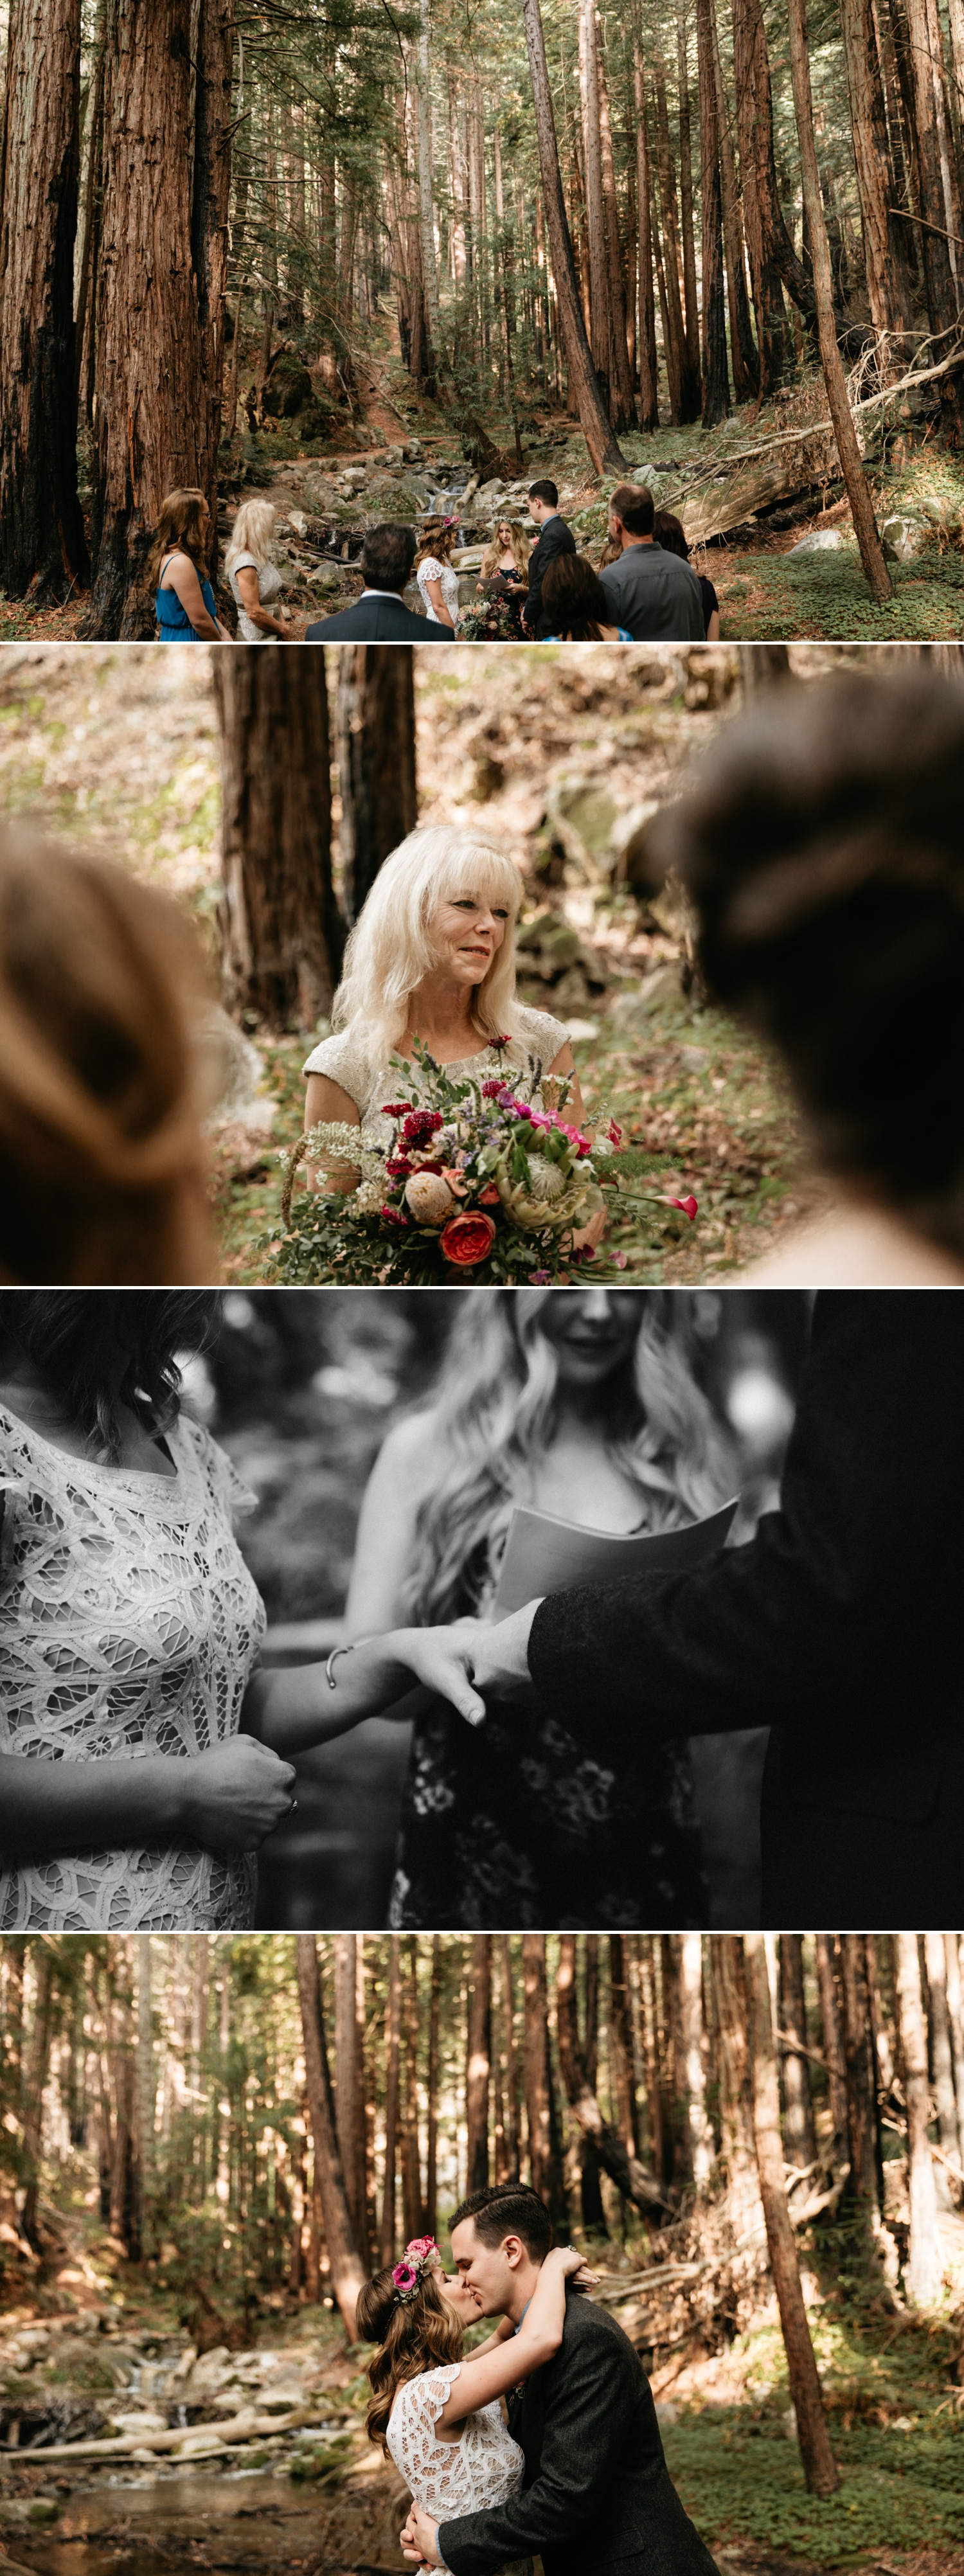 Kaitlyn and Matt Intimate Big Sur Wedding by Paige Nelson Photography